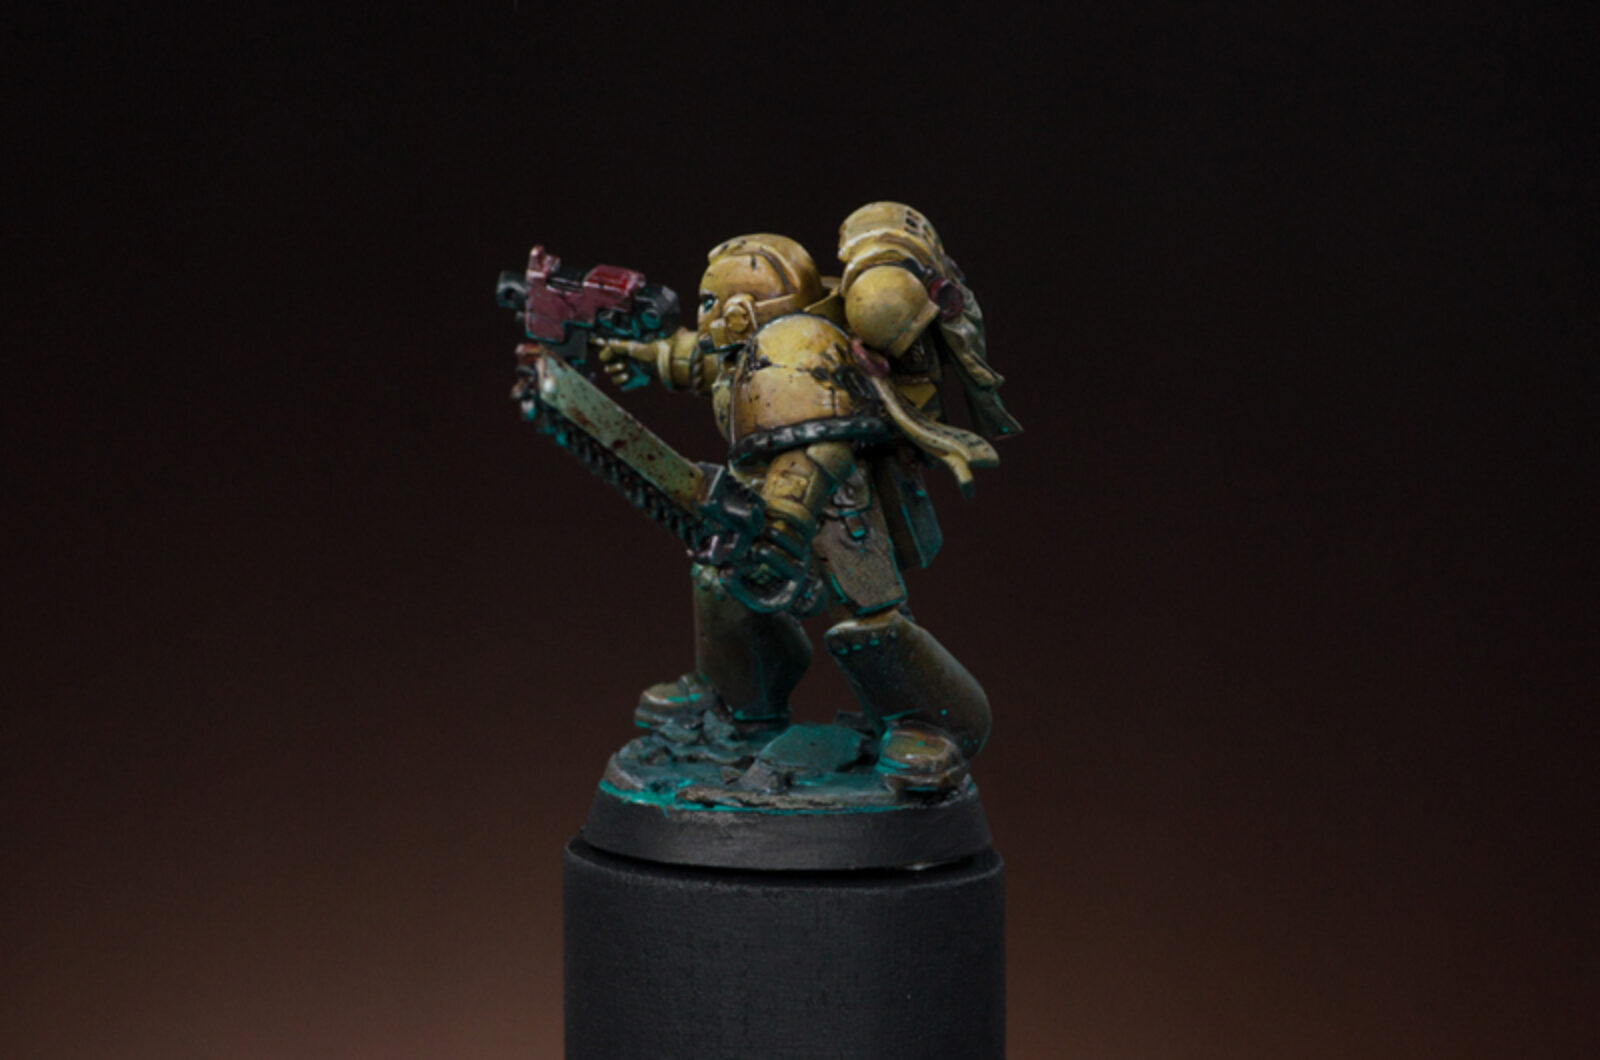 Imperial Fist03